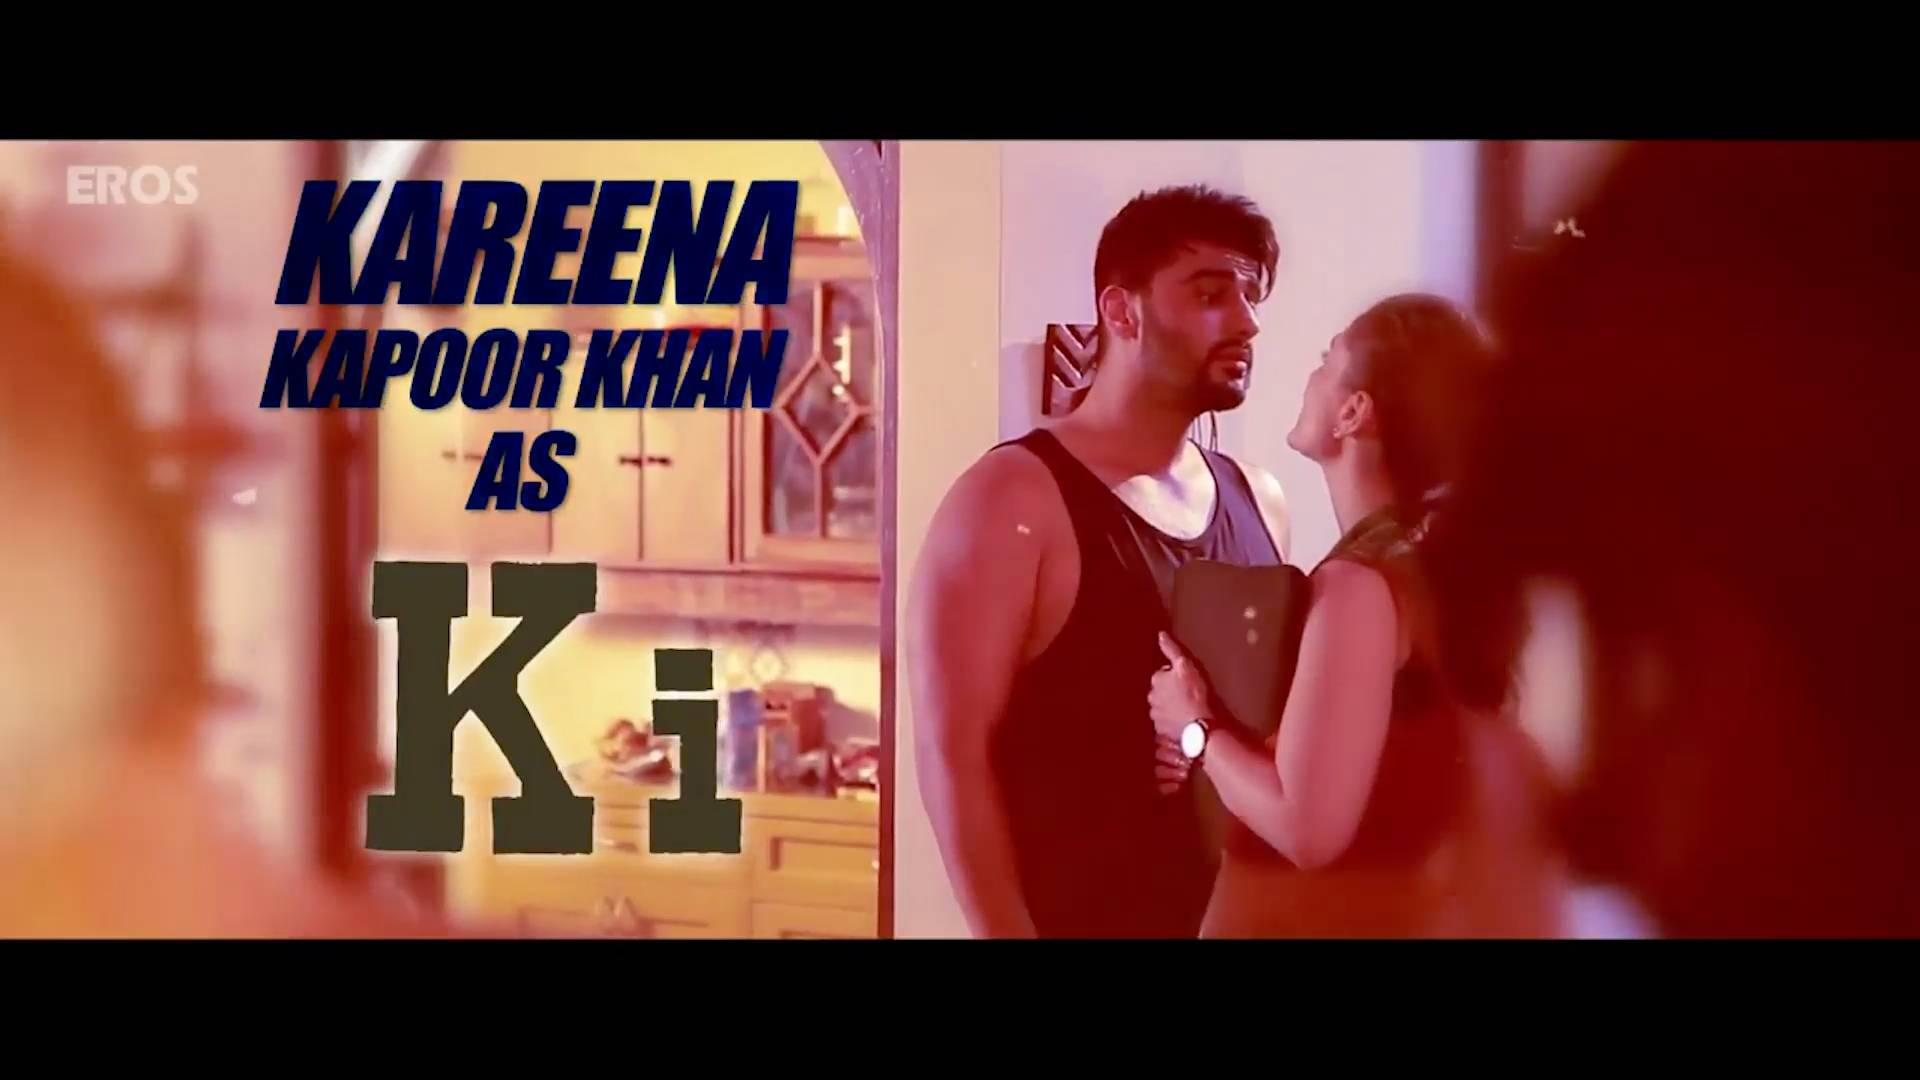 Meet Kareena Kapoor Khan as Ki!